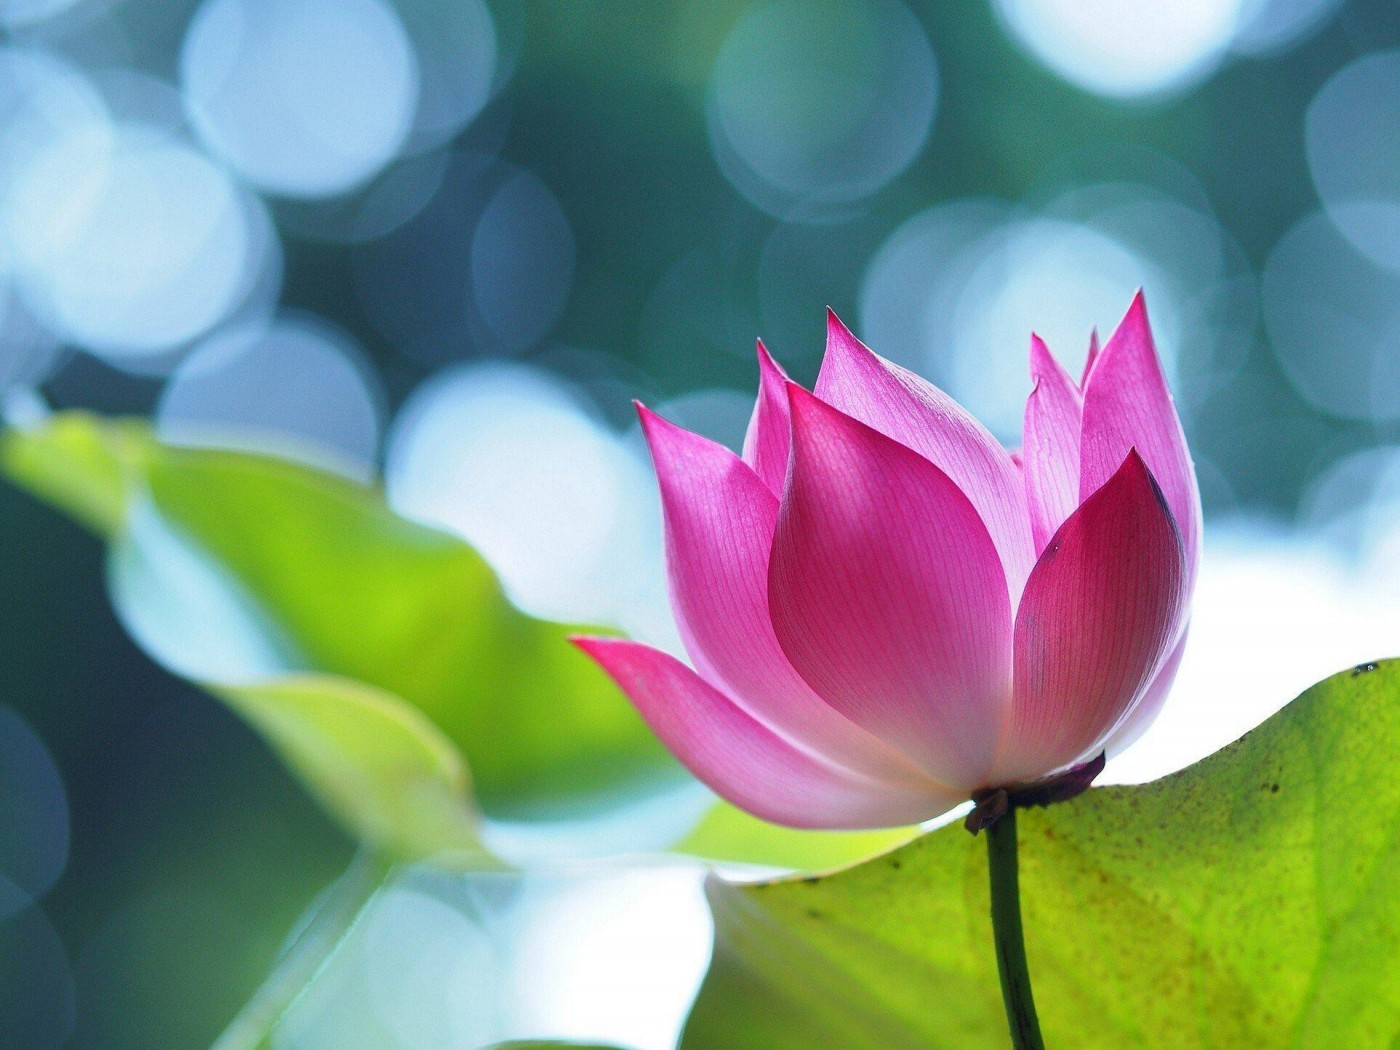 We All have Buddha Nature - Once we attain Buddha-hood, we all have the ability to create a Pure-Land.